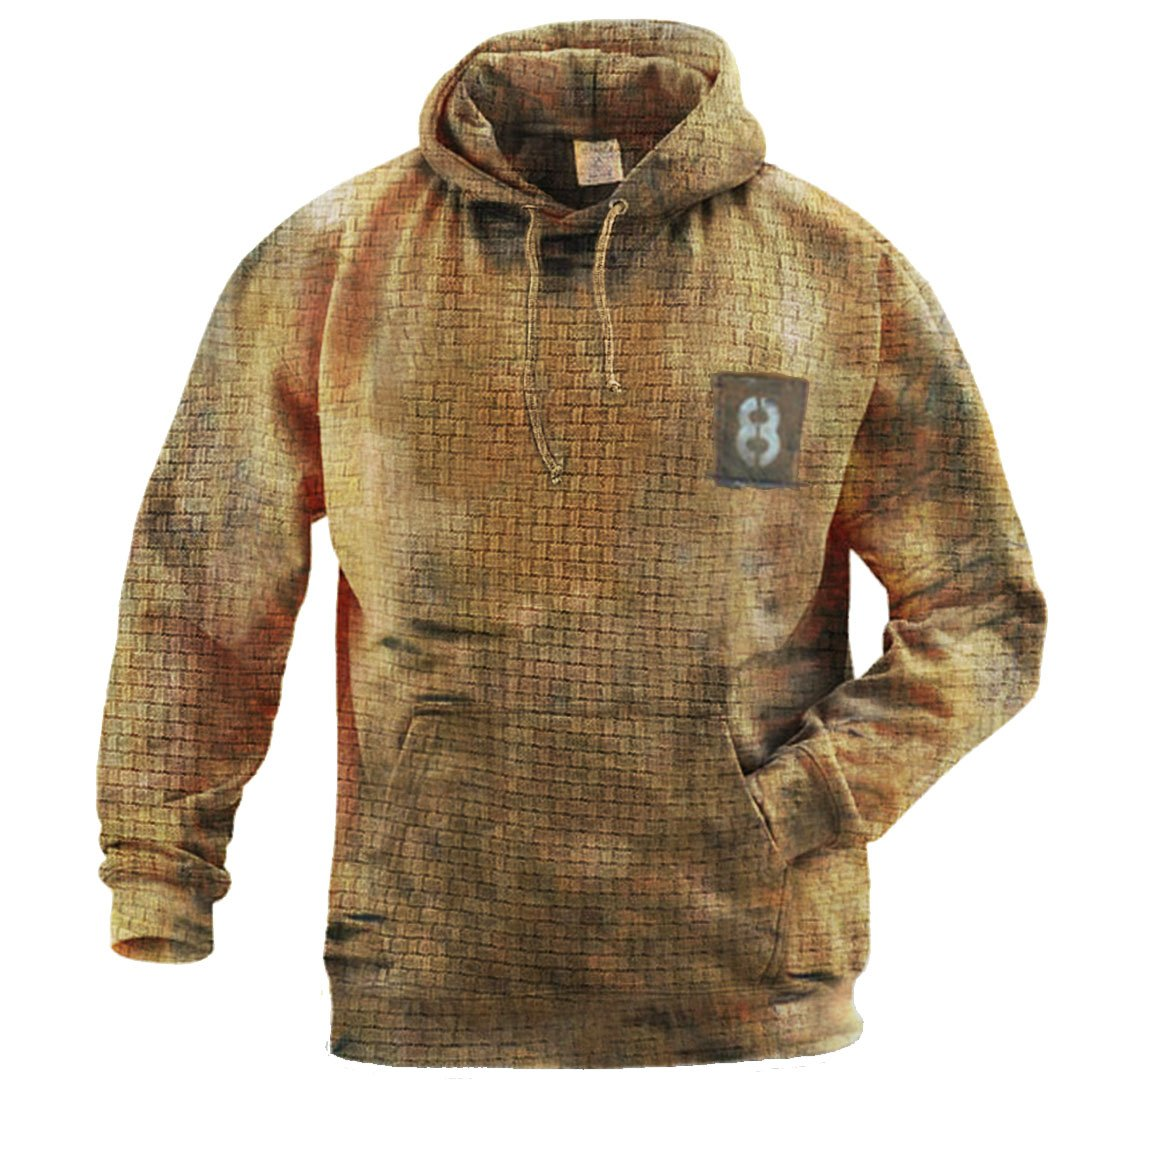 Mens Outdoor Hooded Warm Sweater